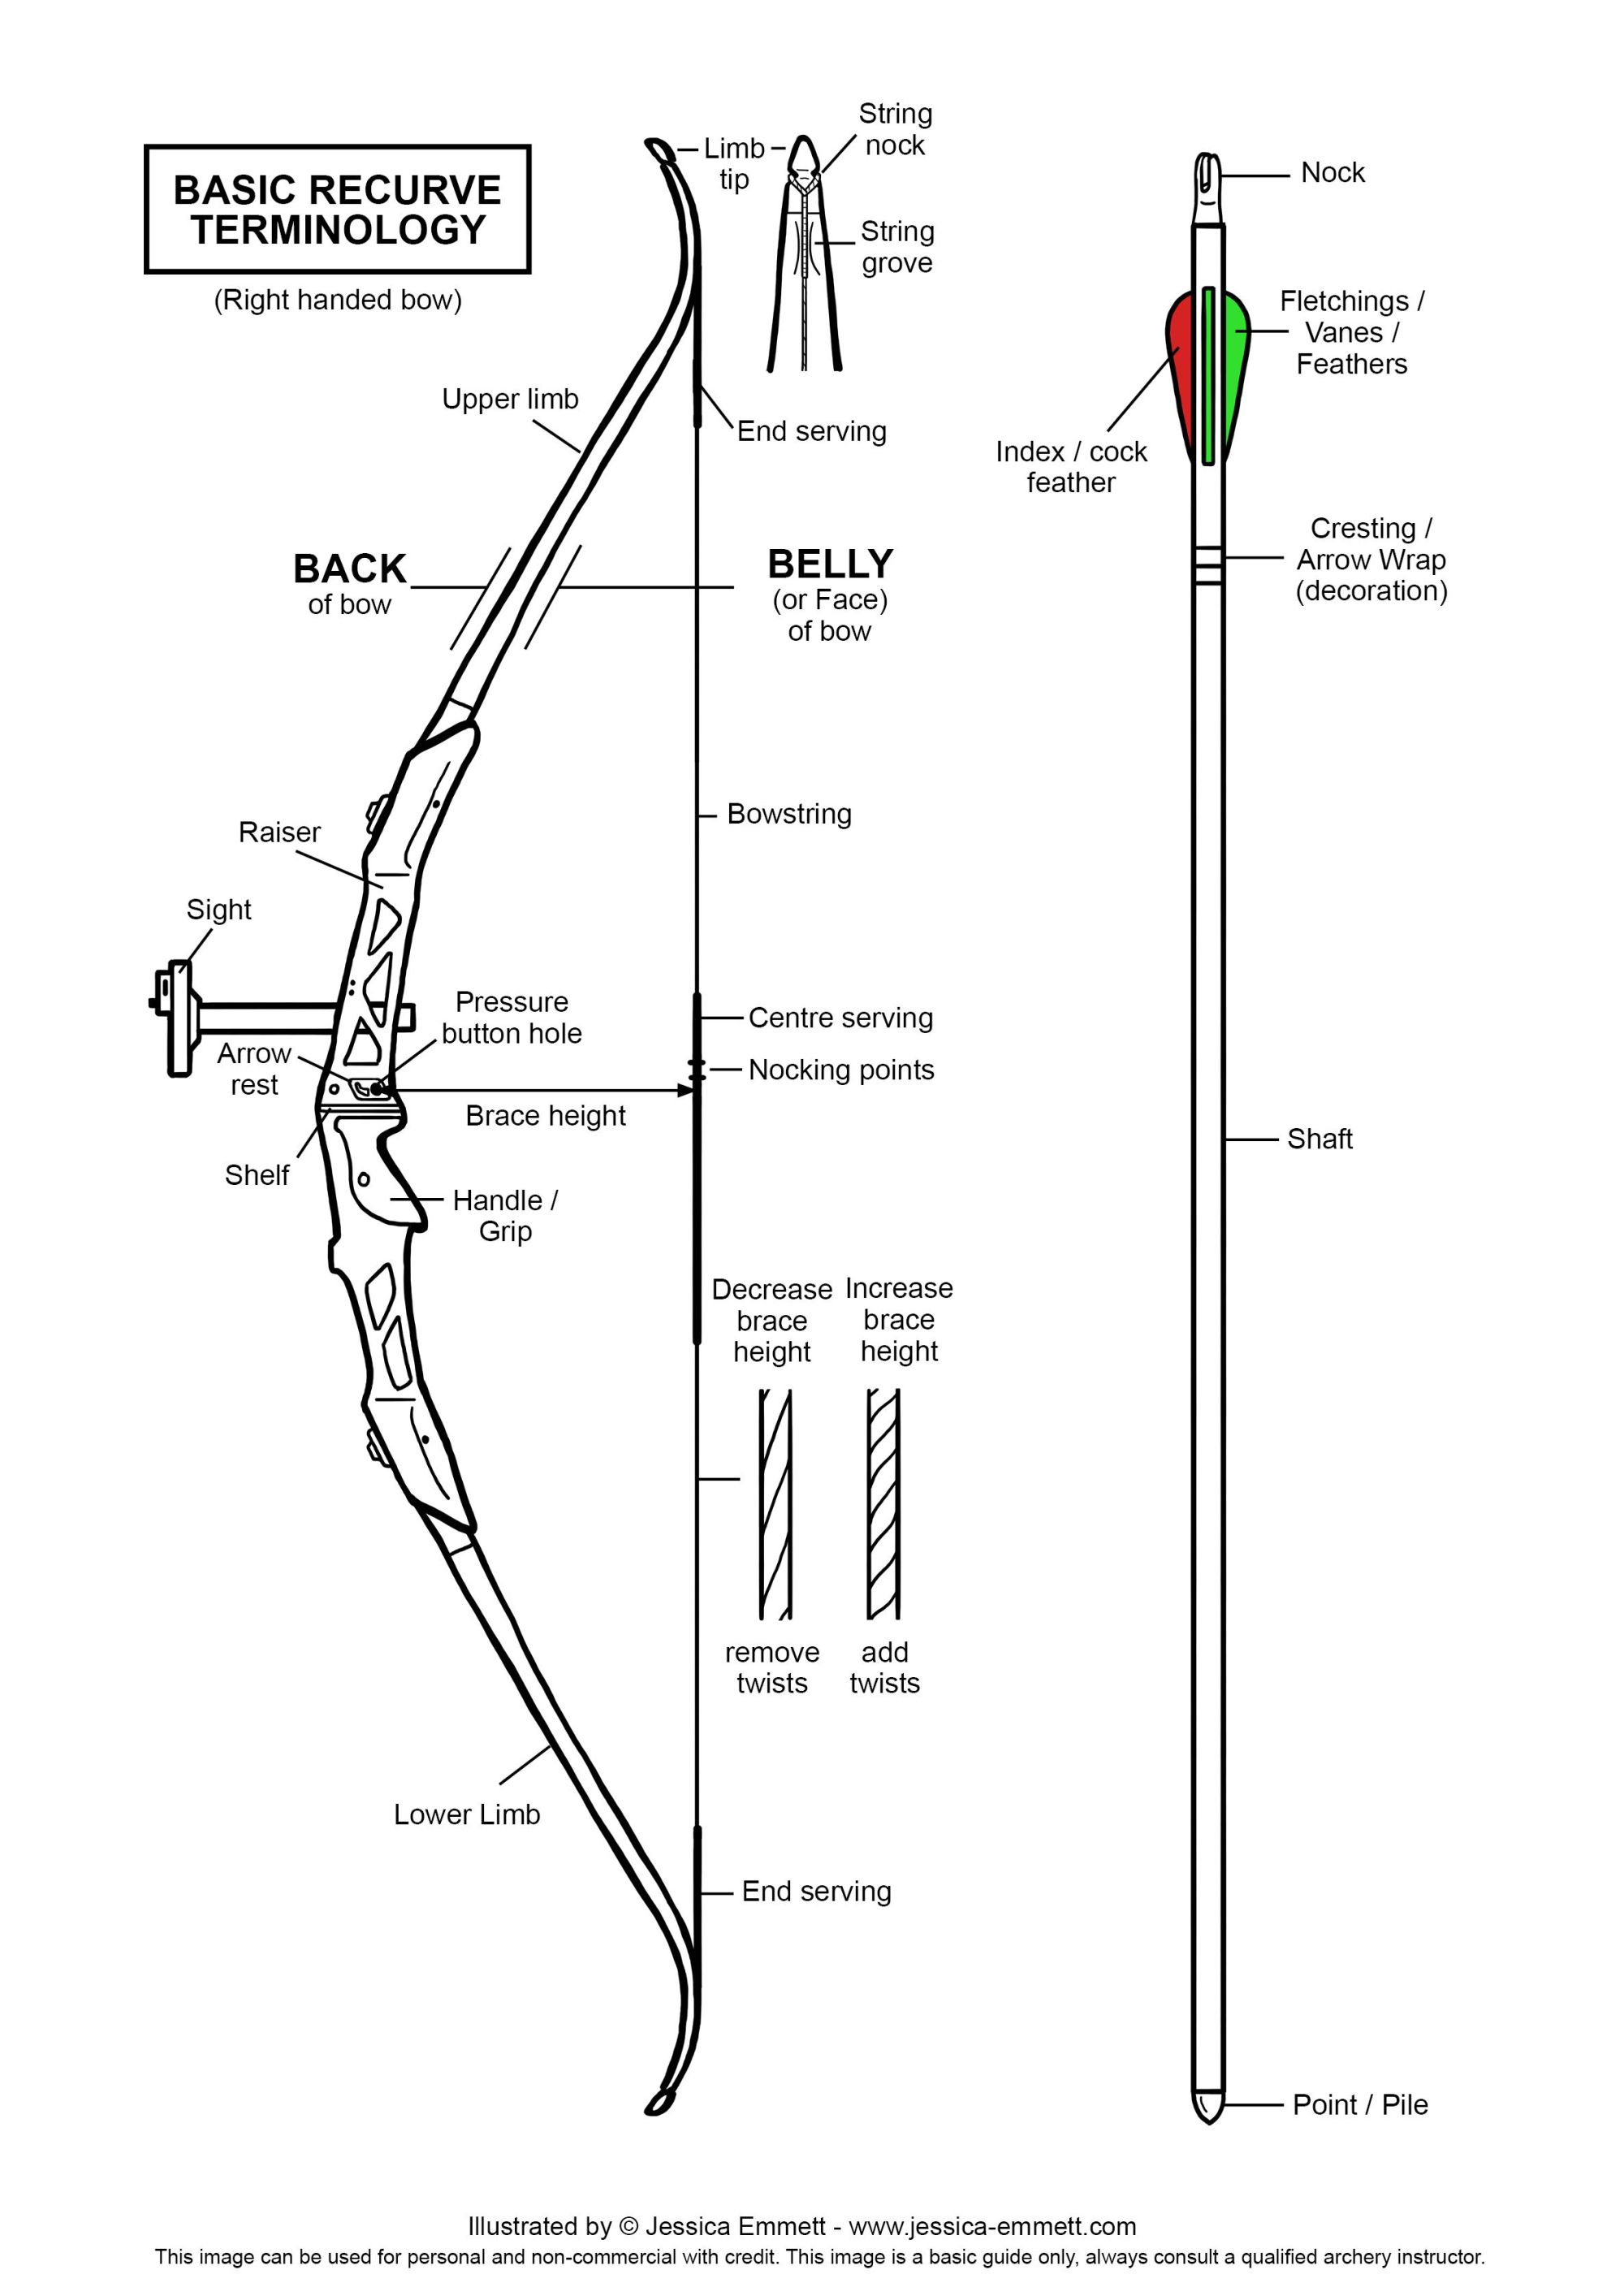 hight resolution of archery terms diagram wiring diagram inside archery terms diagram